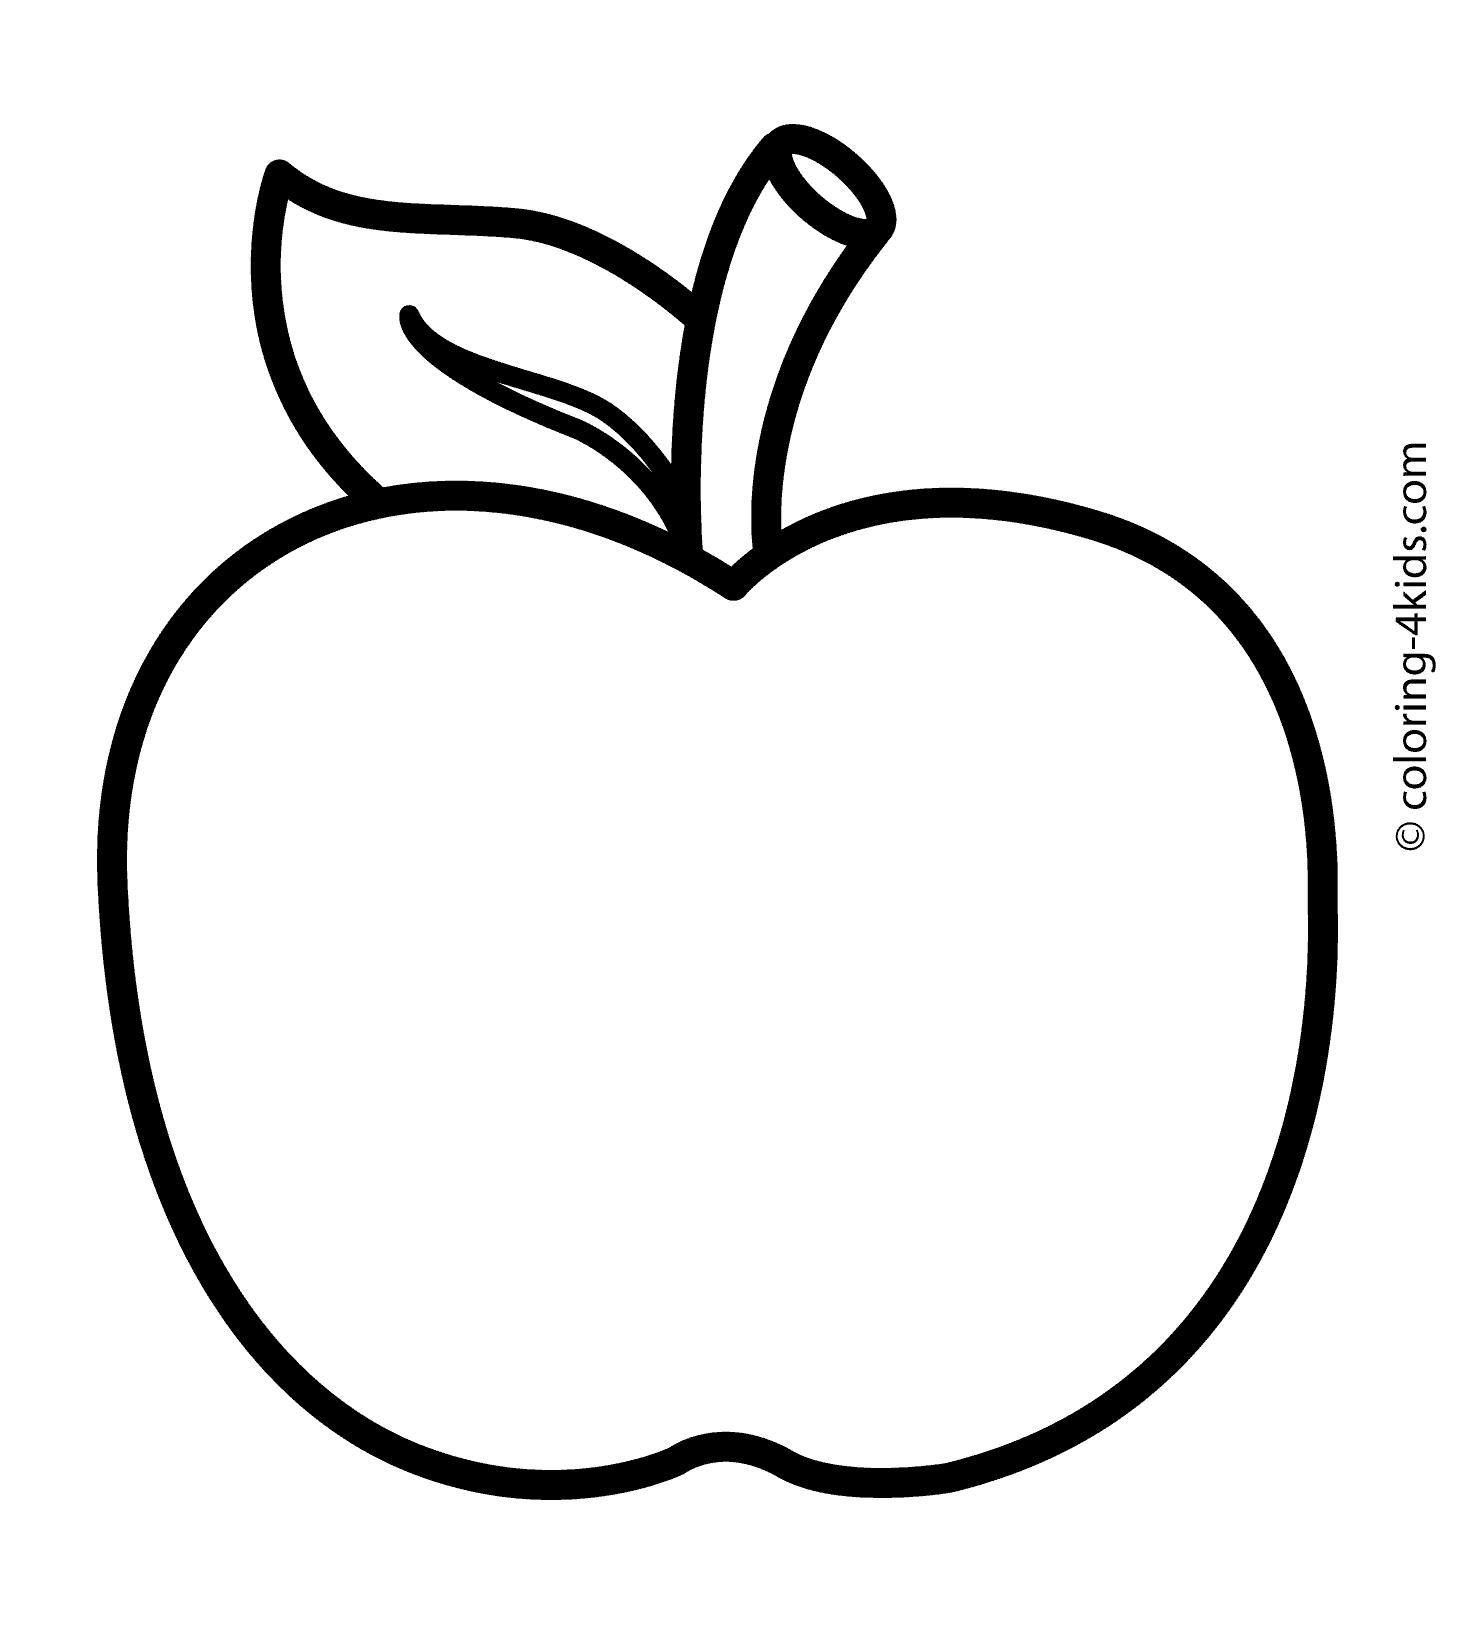 http://www.fotolip.com/wp-content/uploads/2016/05/Apple-coloring ...